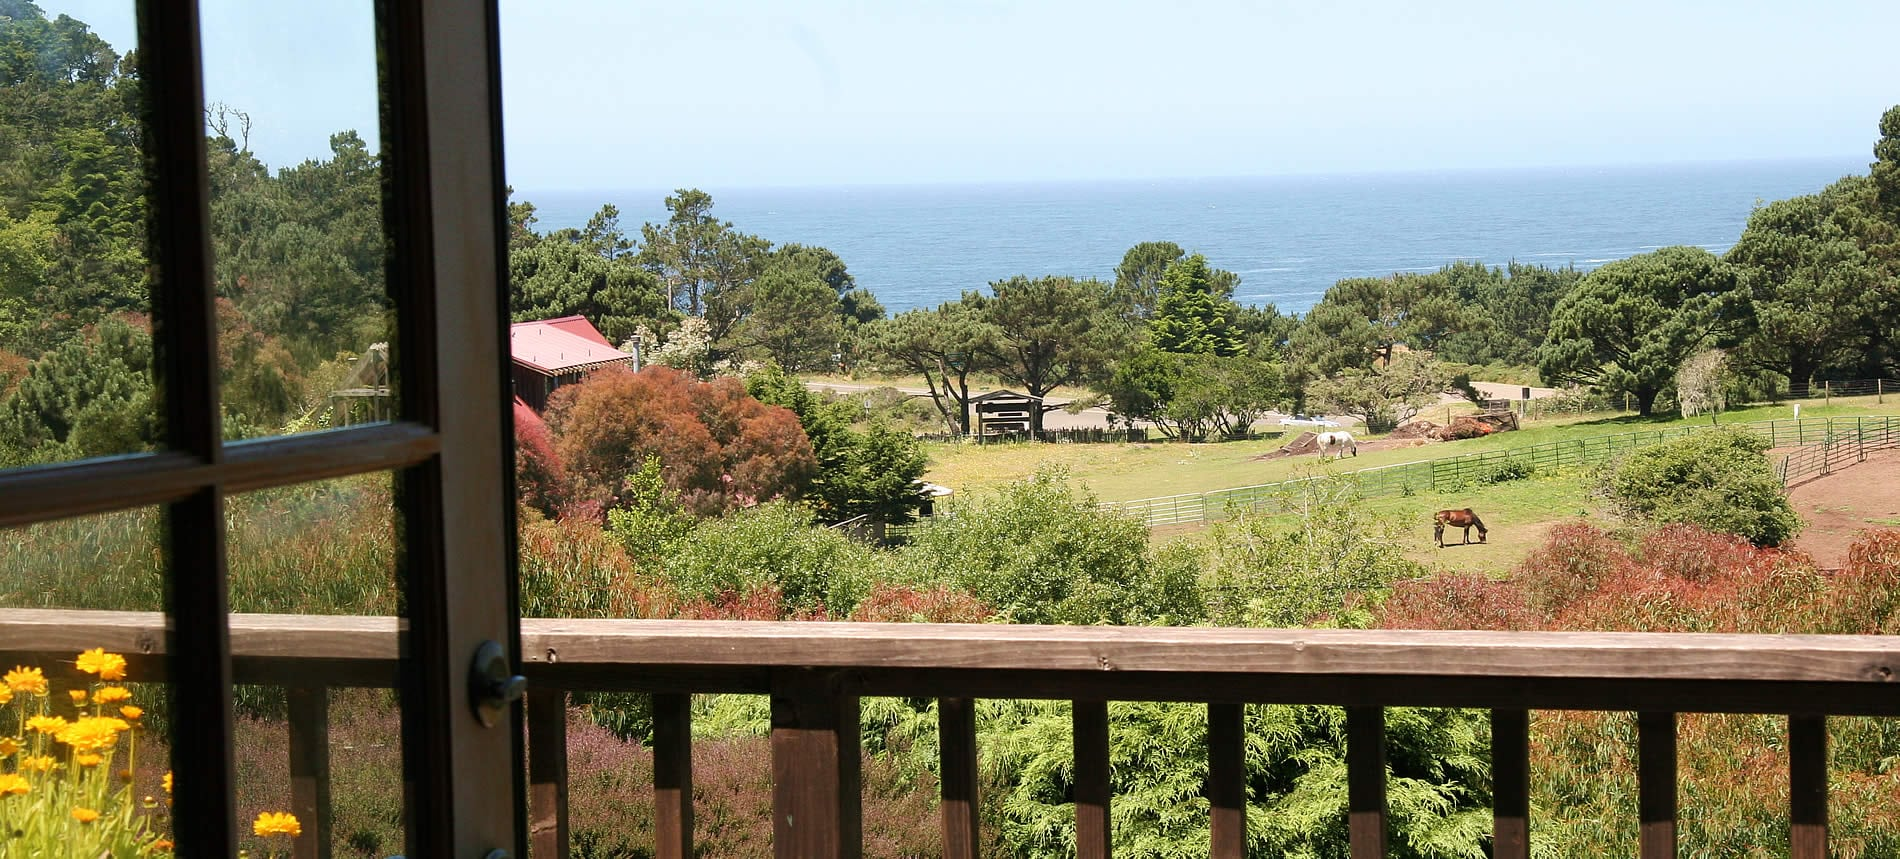 mendocino hotel with ocean view at Stanford Inn